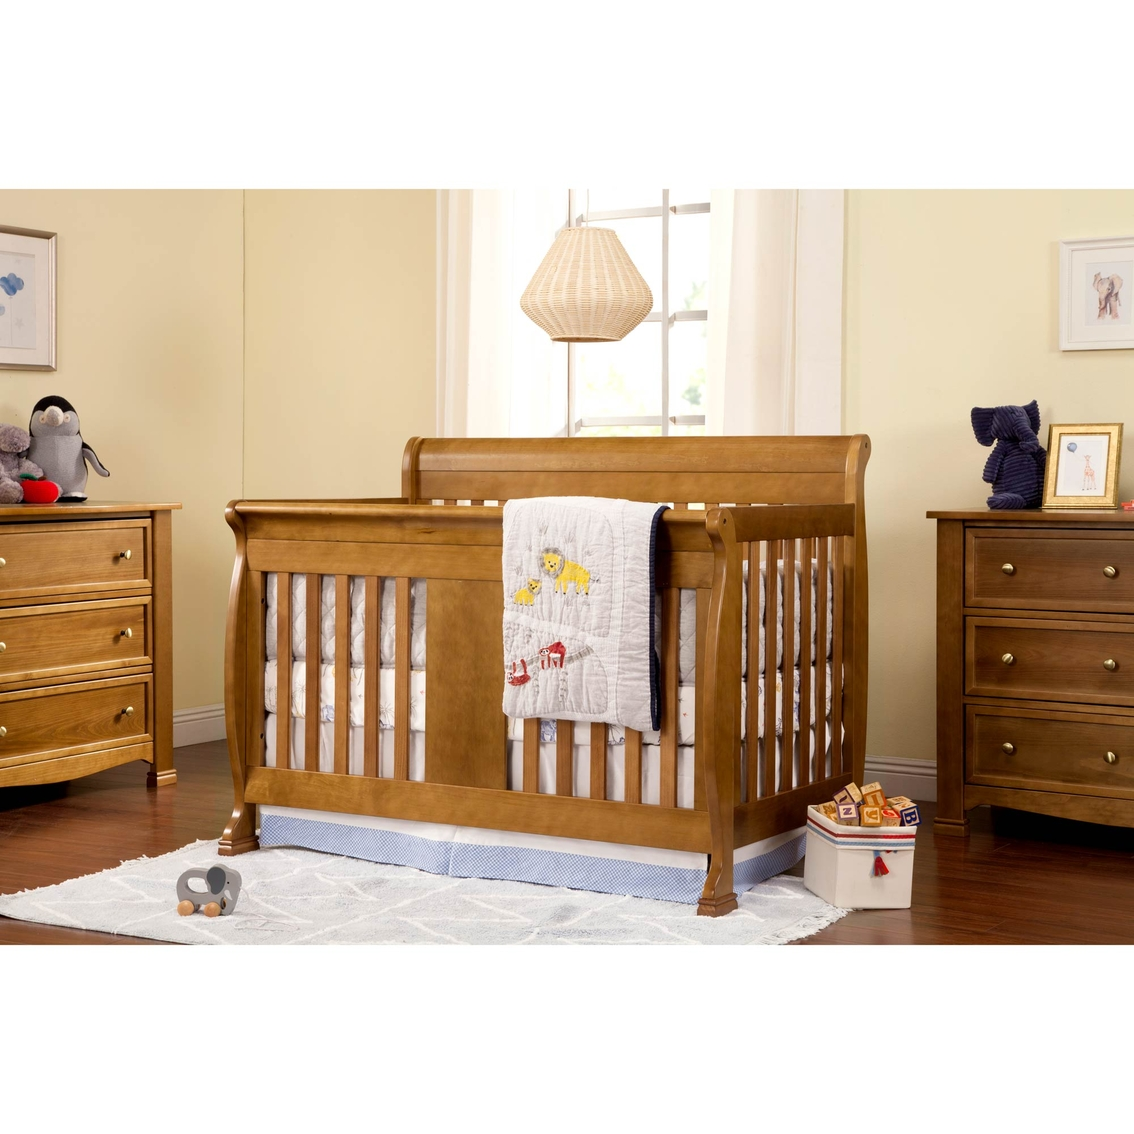 Davinci Porter 4 In 1 Convertible Crib With Toddler Bed Conversion